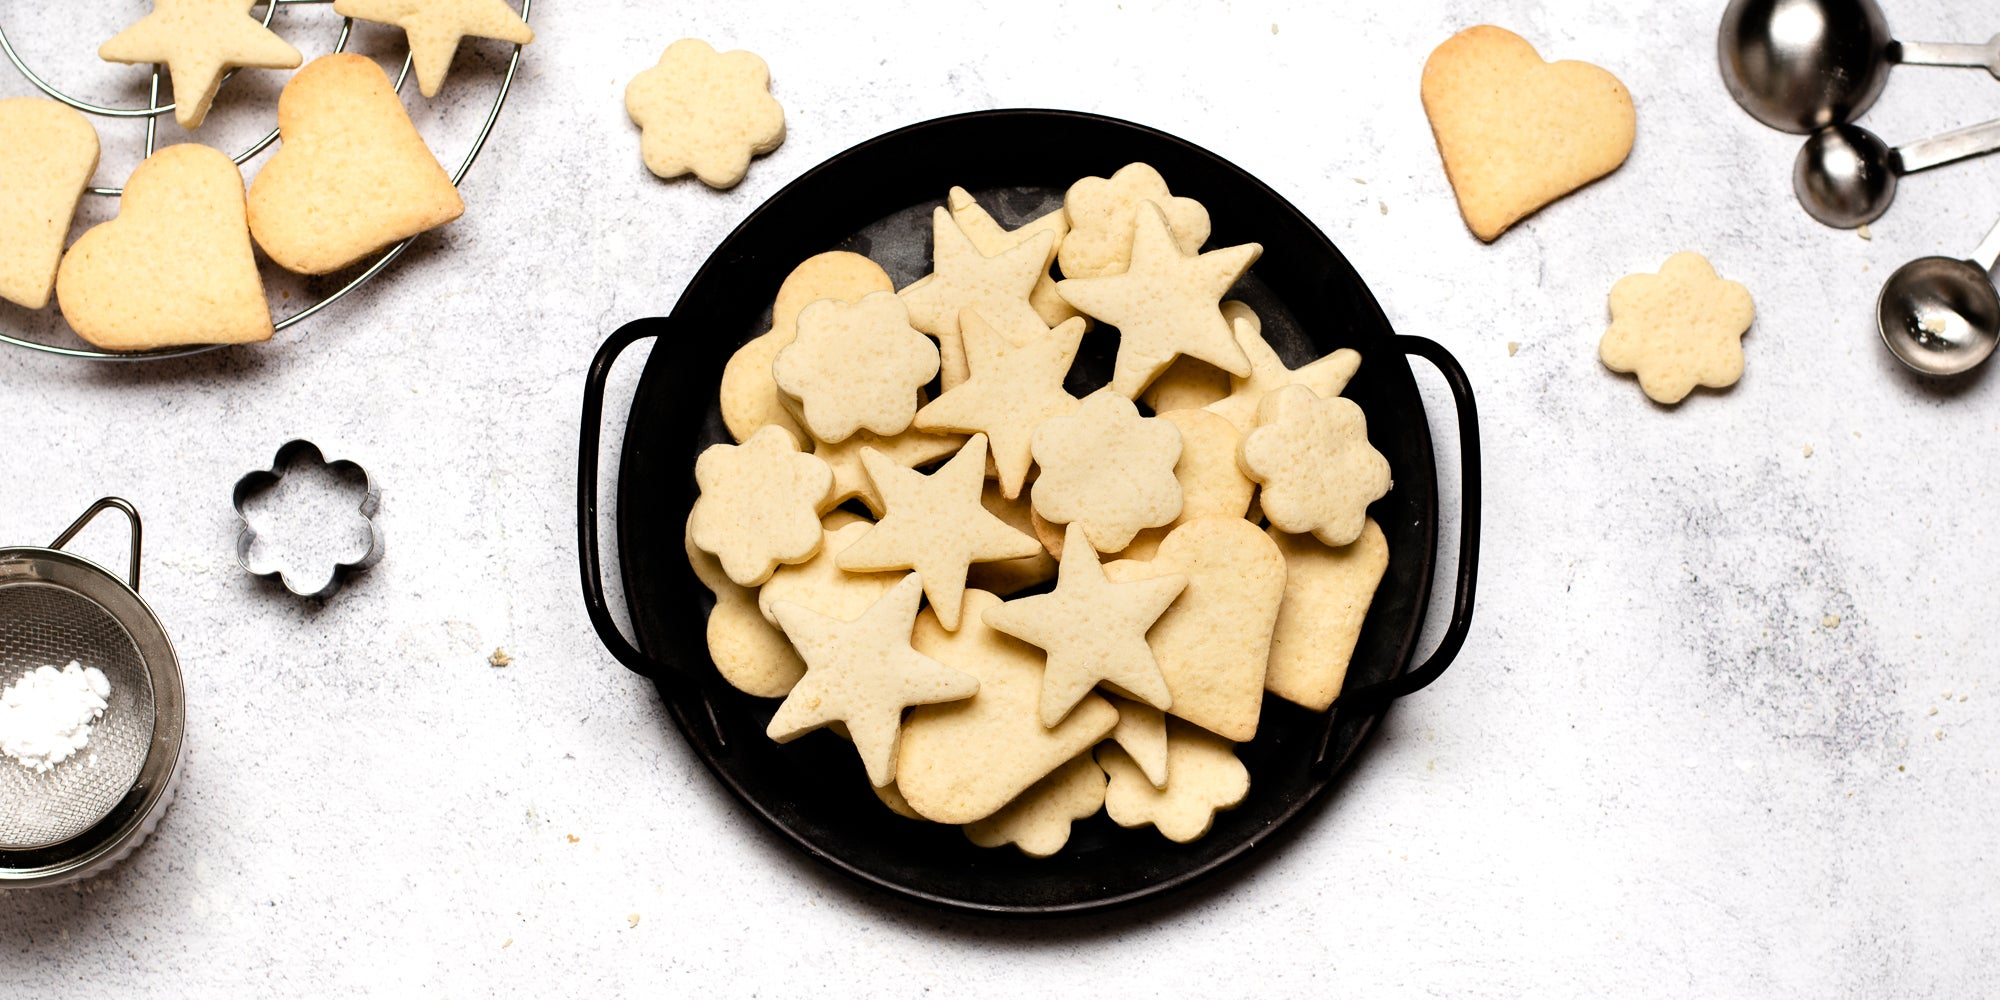 Top down view of a bowl of star shaped gluten free biscuits